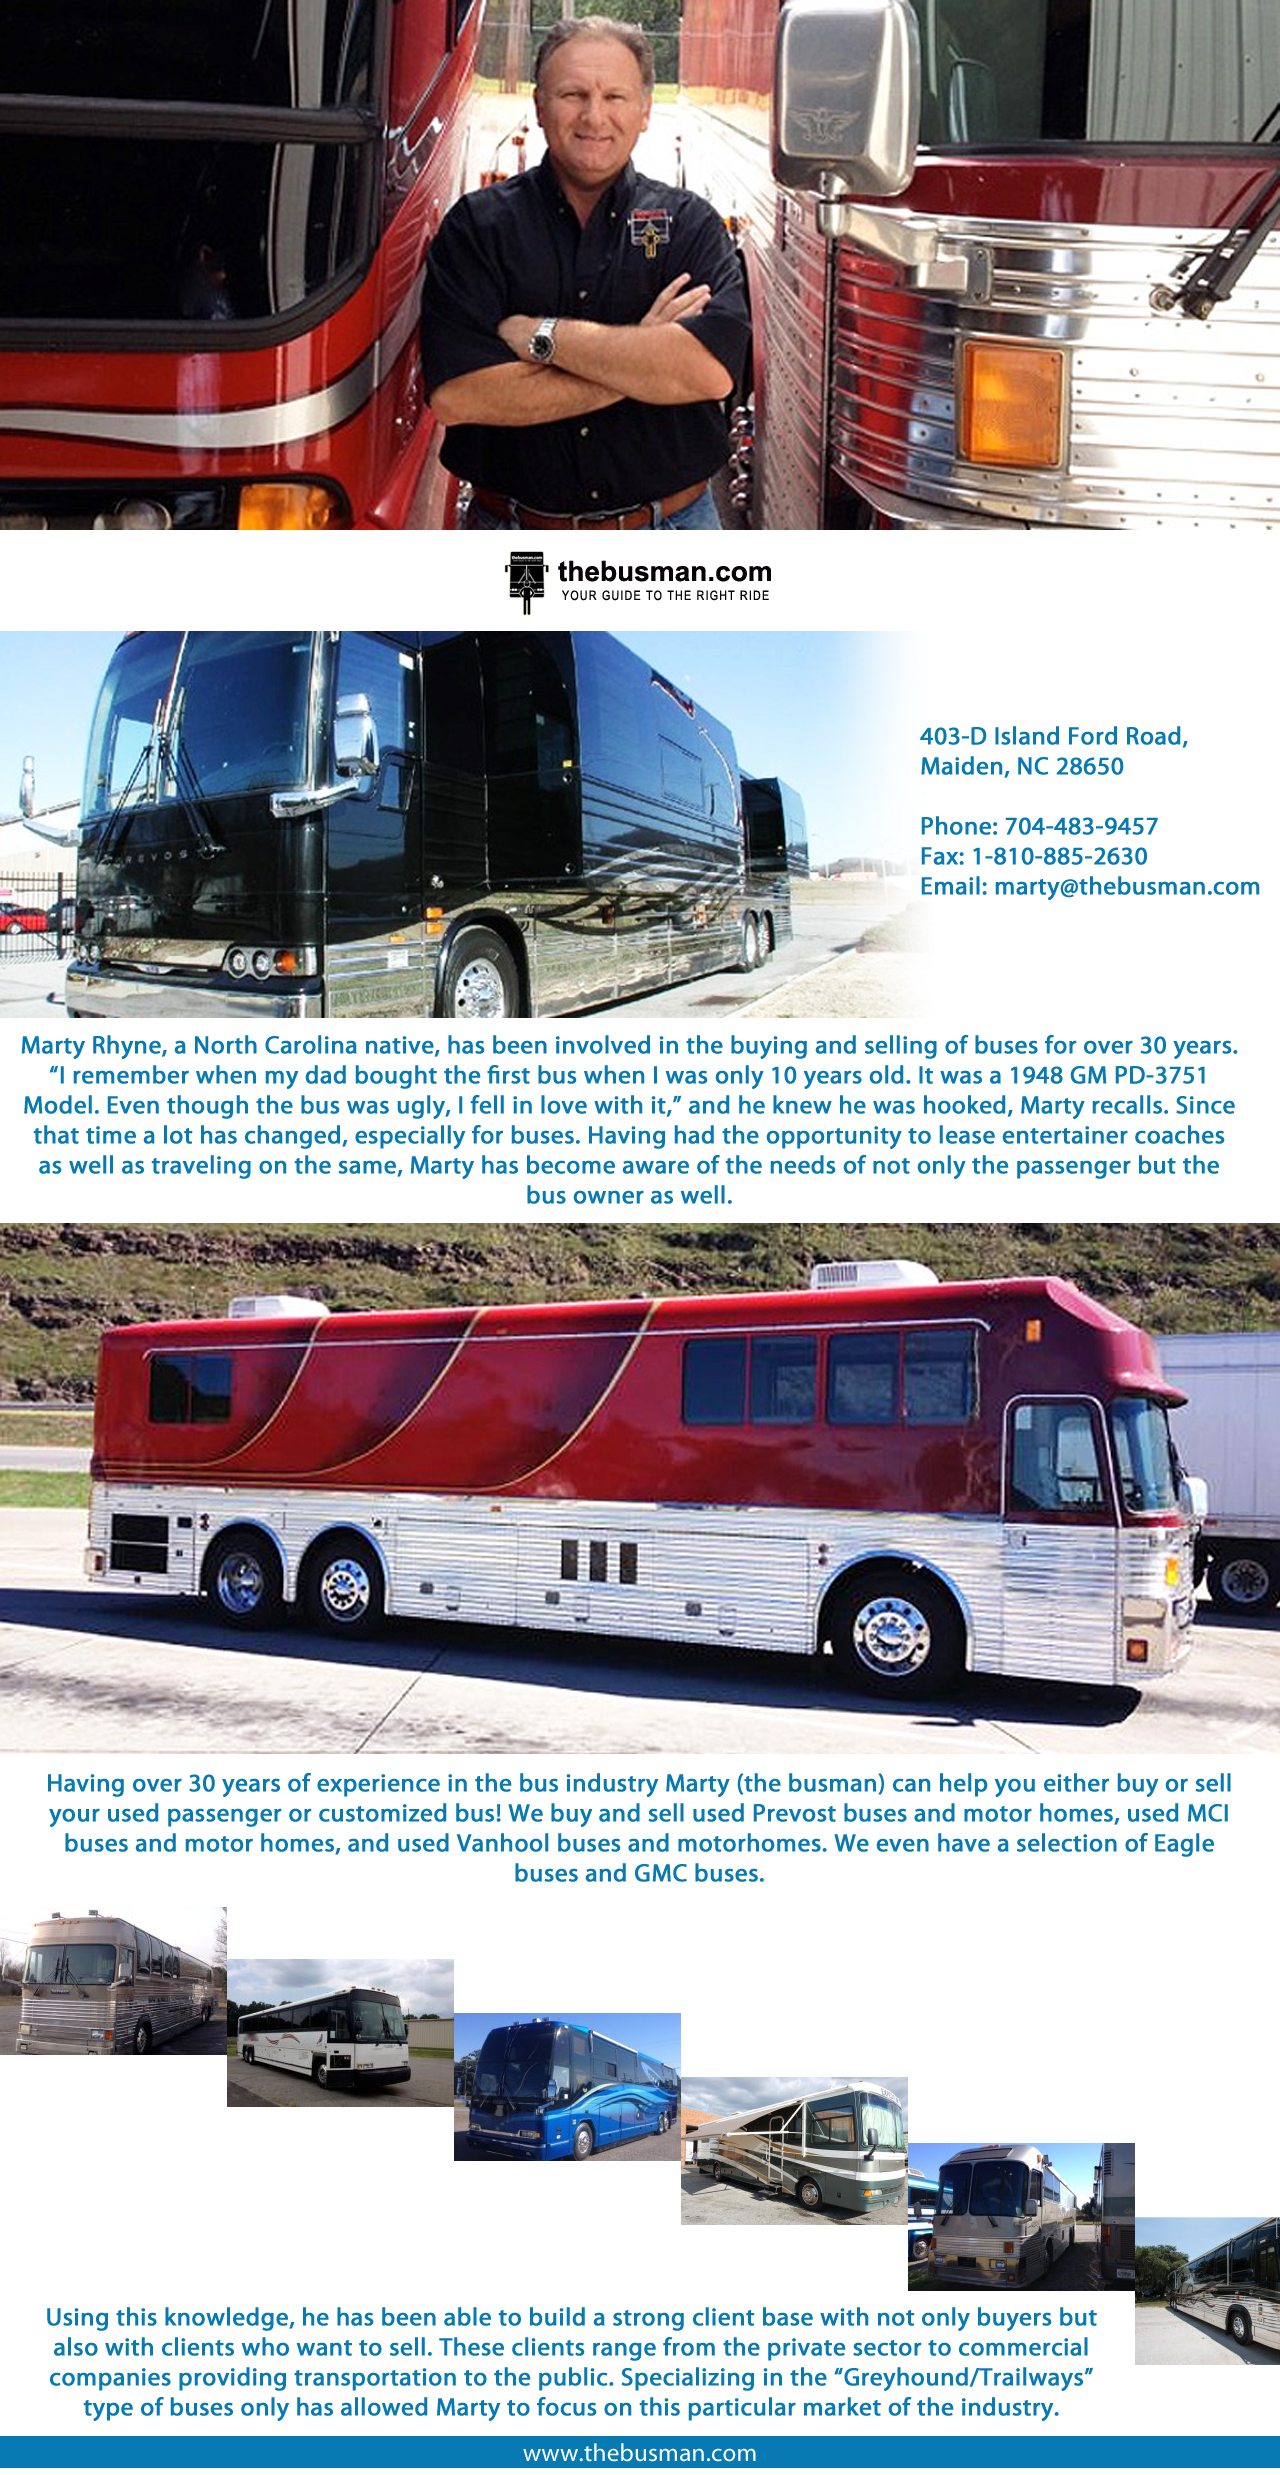 Entertainer Buses For Sale - by the busman [Infographic]